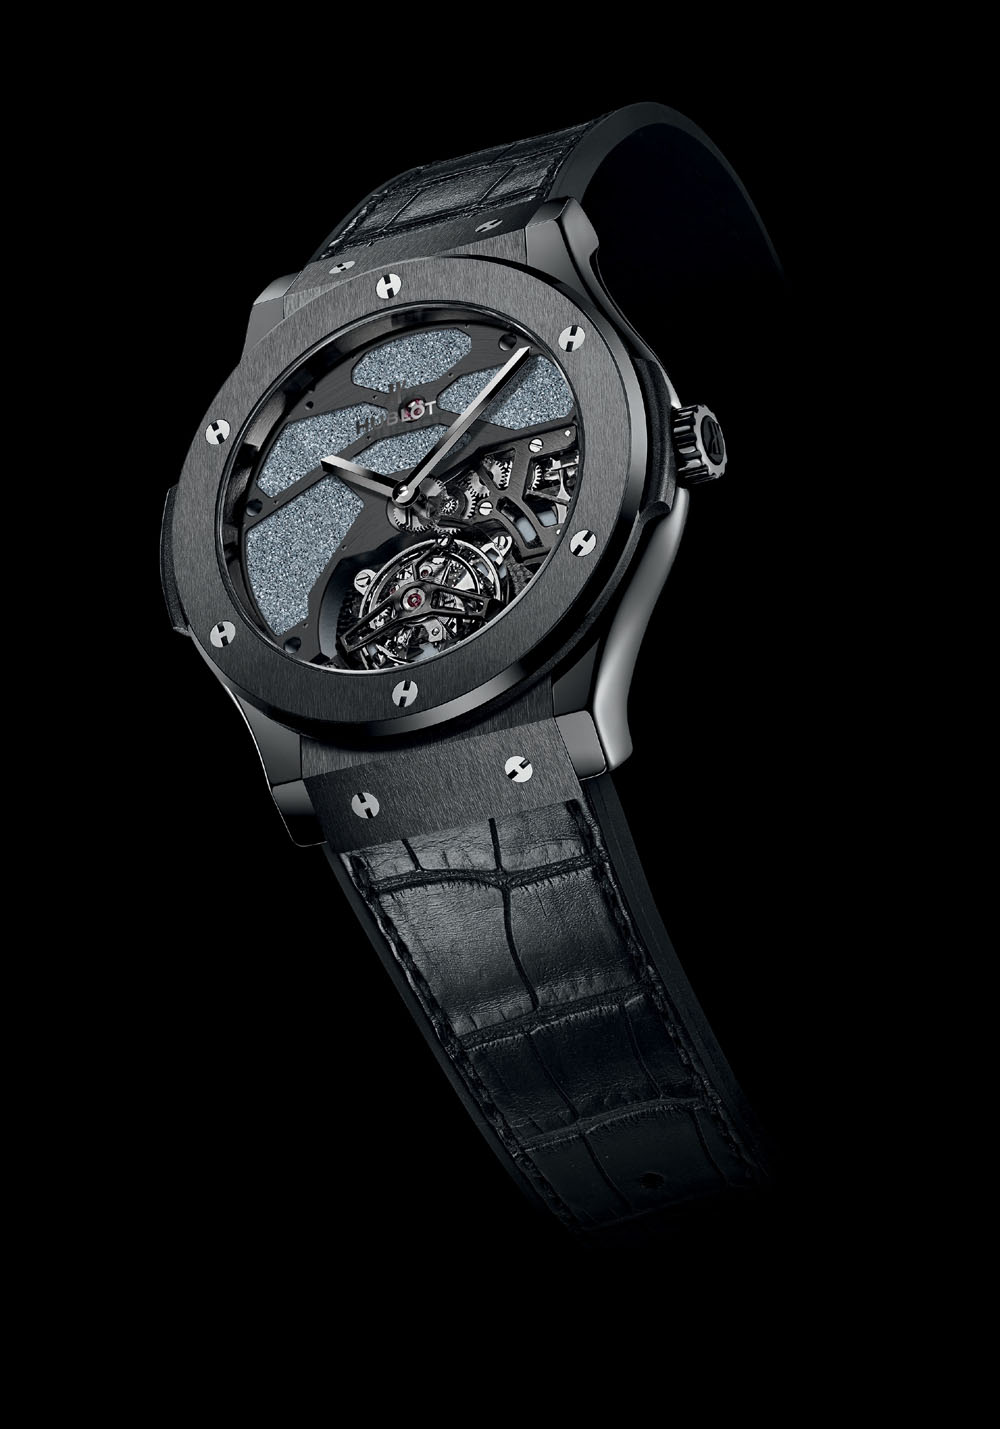 Montre Baselworld 2014 de Hublot